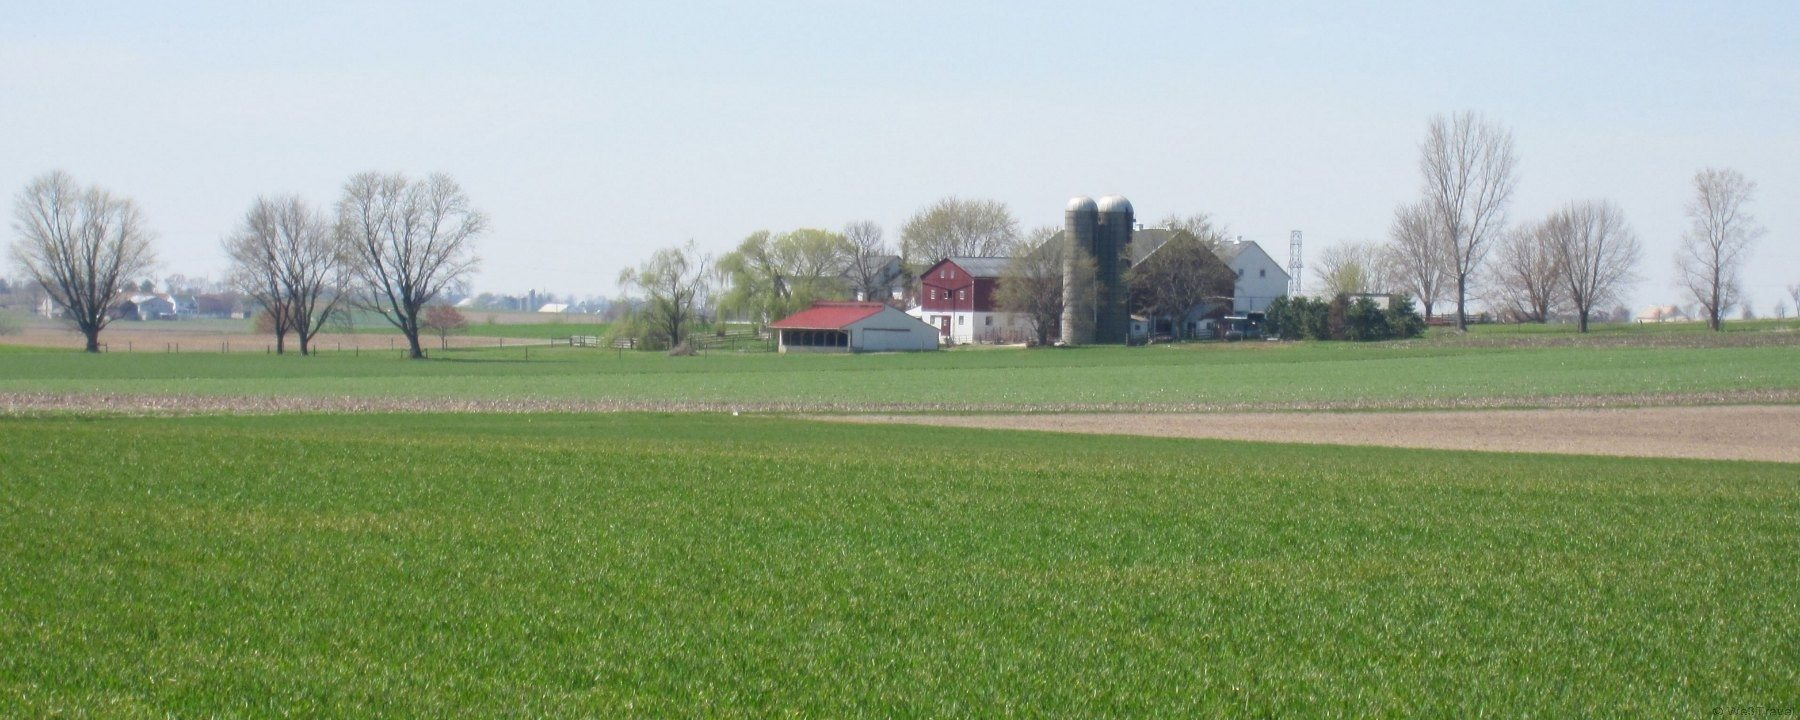 10 things to do in lancaster pa with kids for Amish country things to do